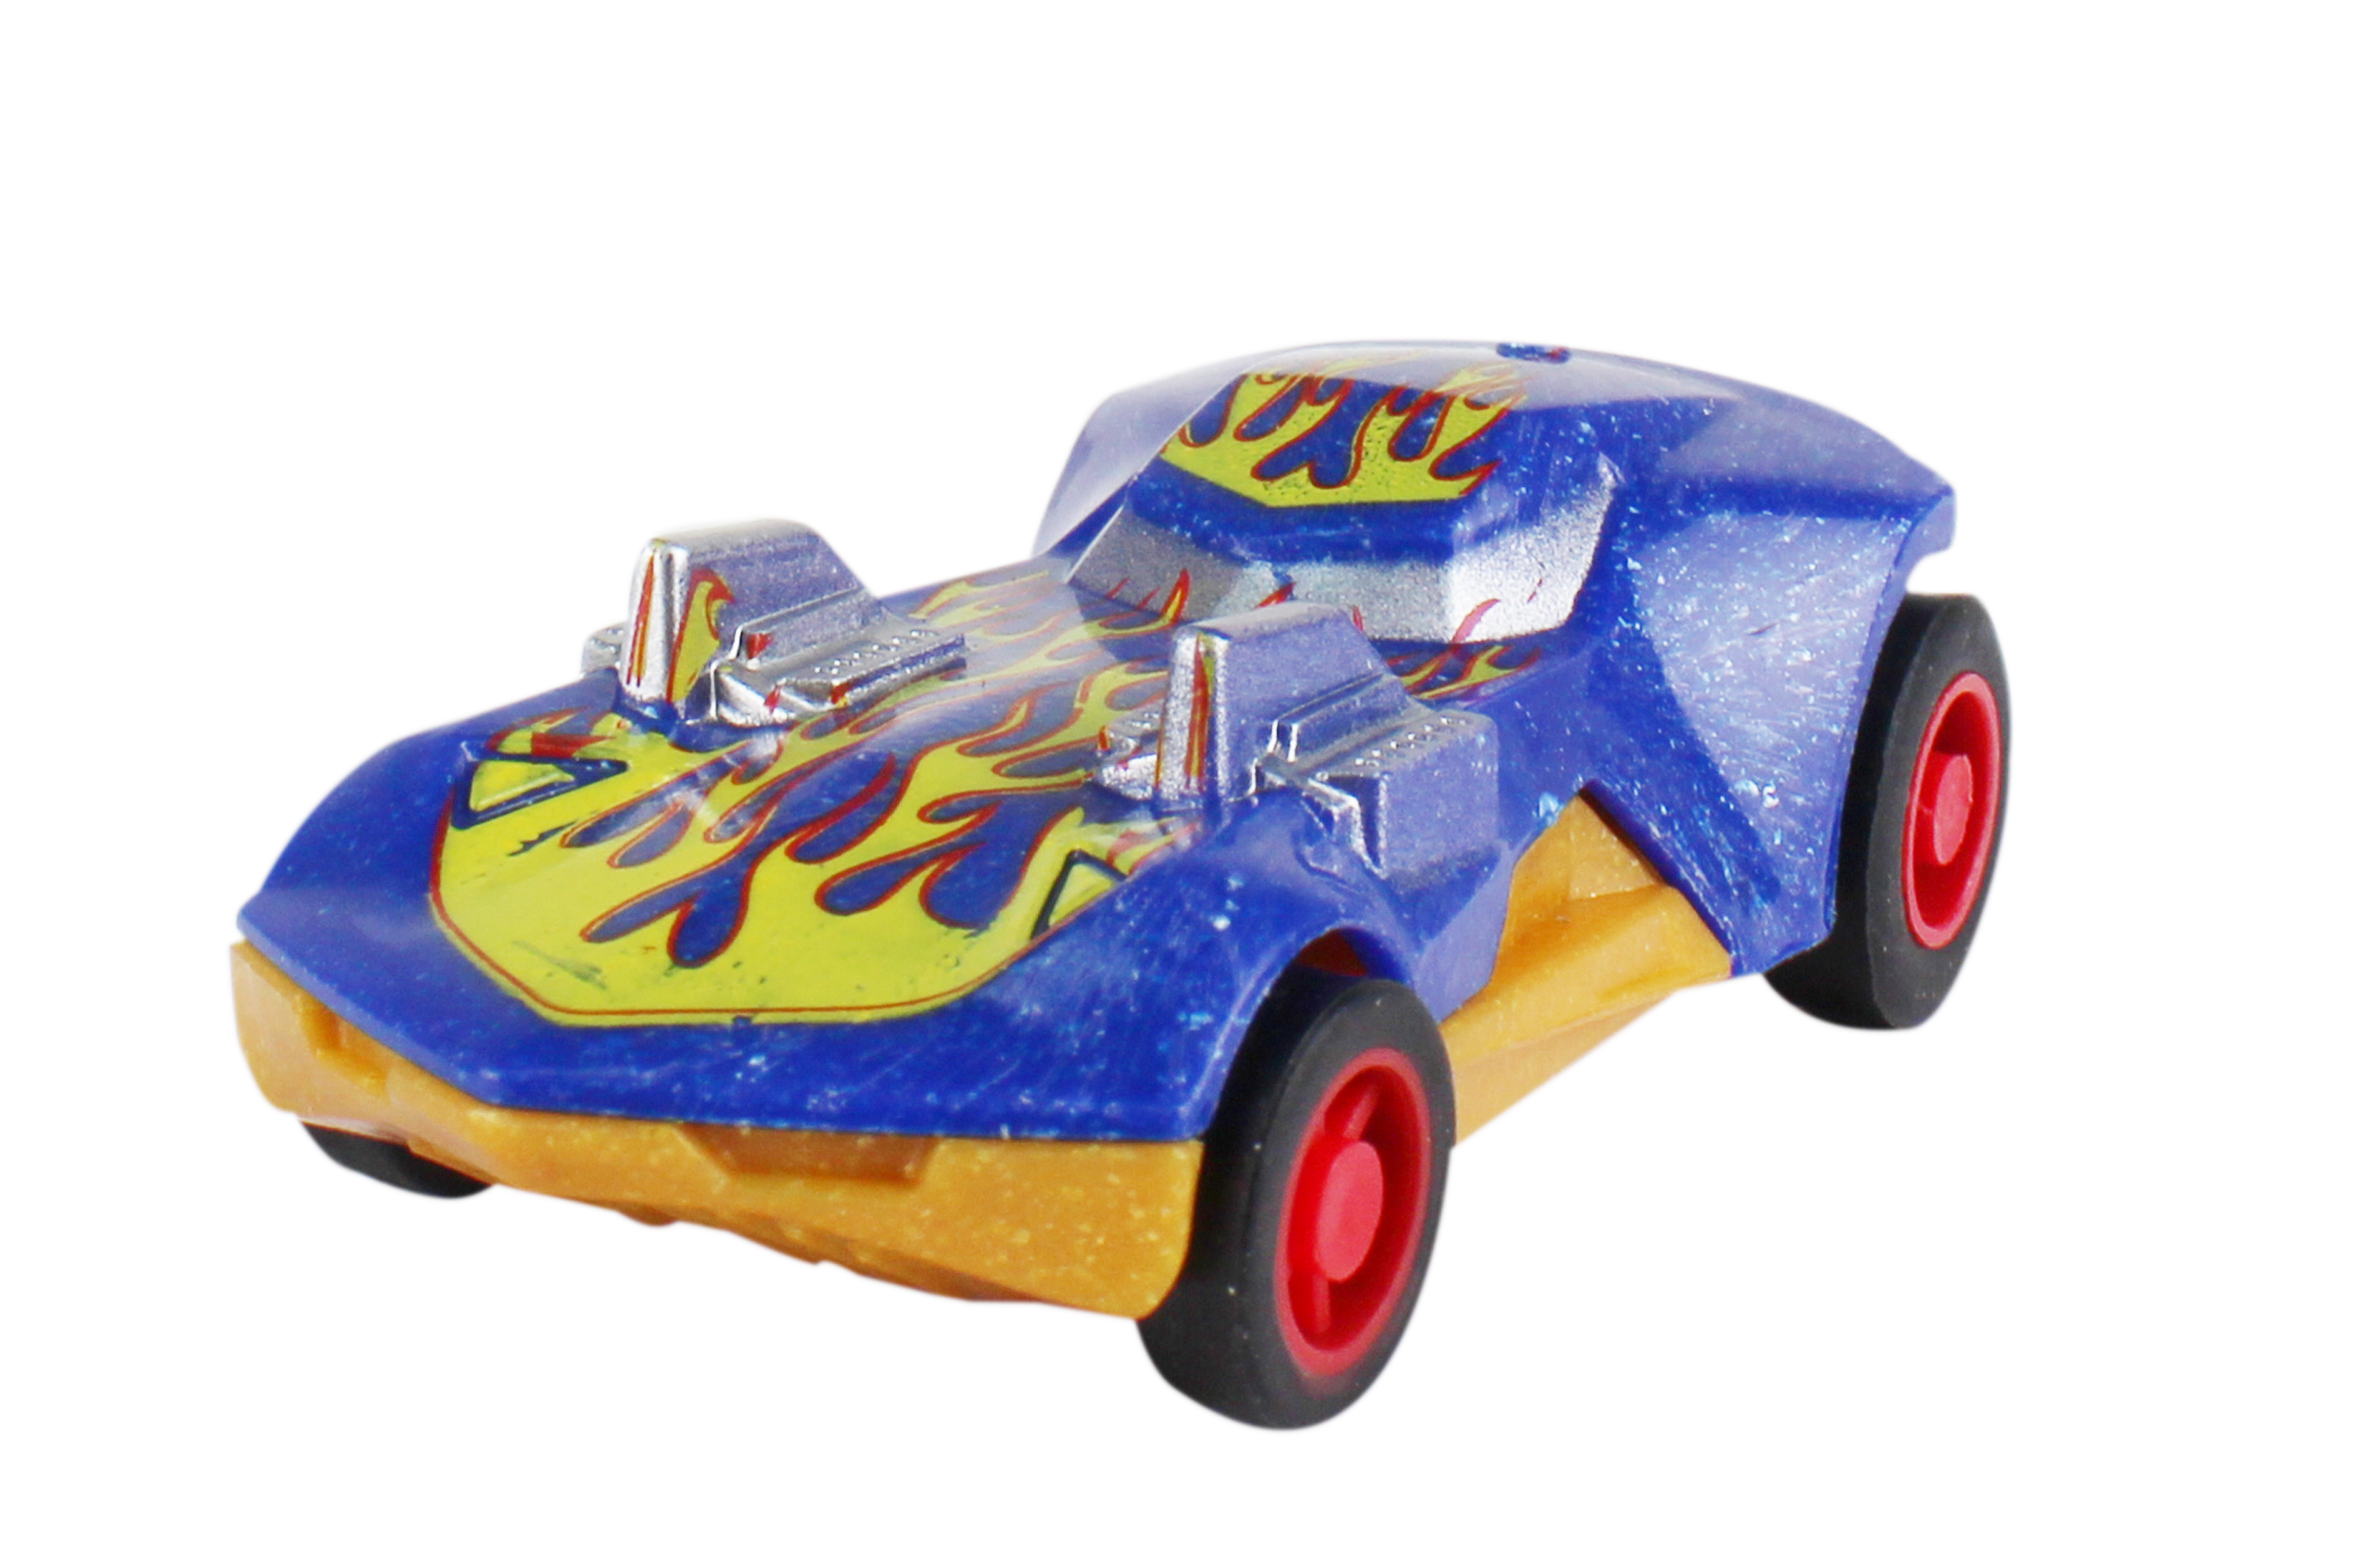 Машинка 1toy Top Gear-Firestorm Т10333 машинки и мотоциклы 1toy top gear road runner т10327